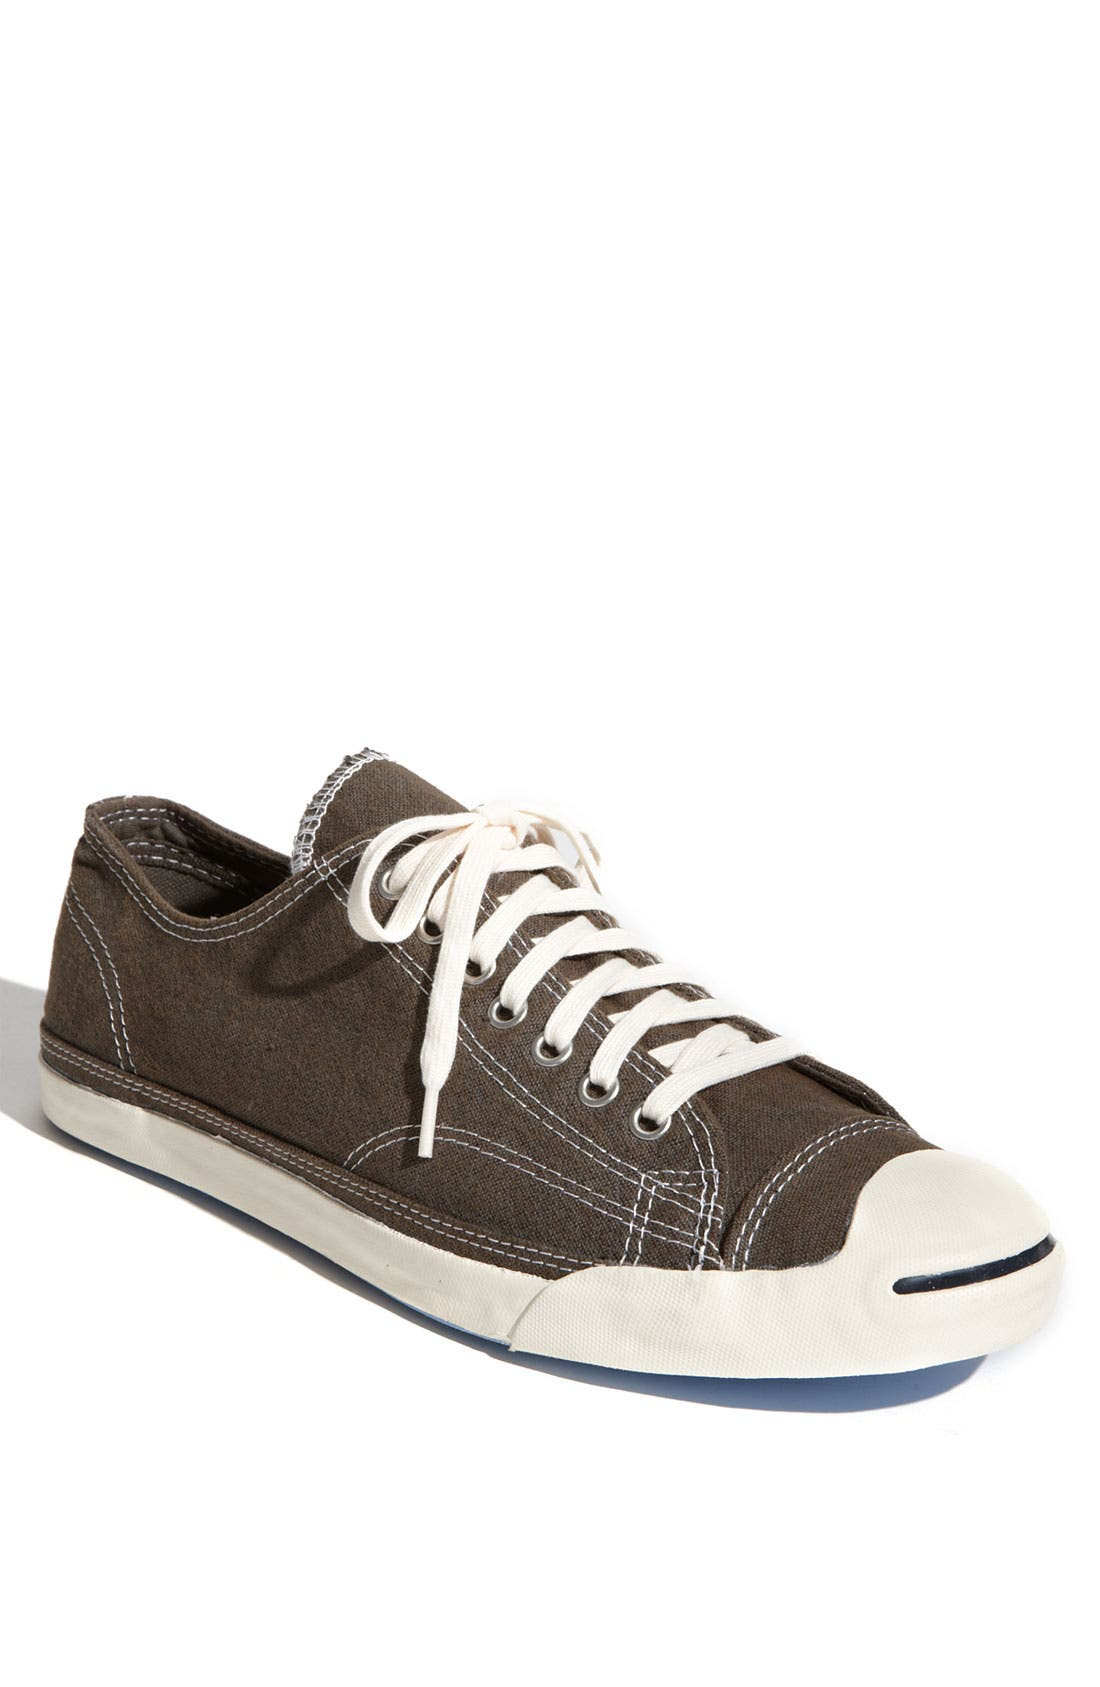 Alternate Image 1 Selected - Converse 'Jack Purcell' Sneaker